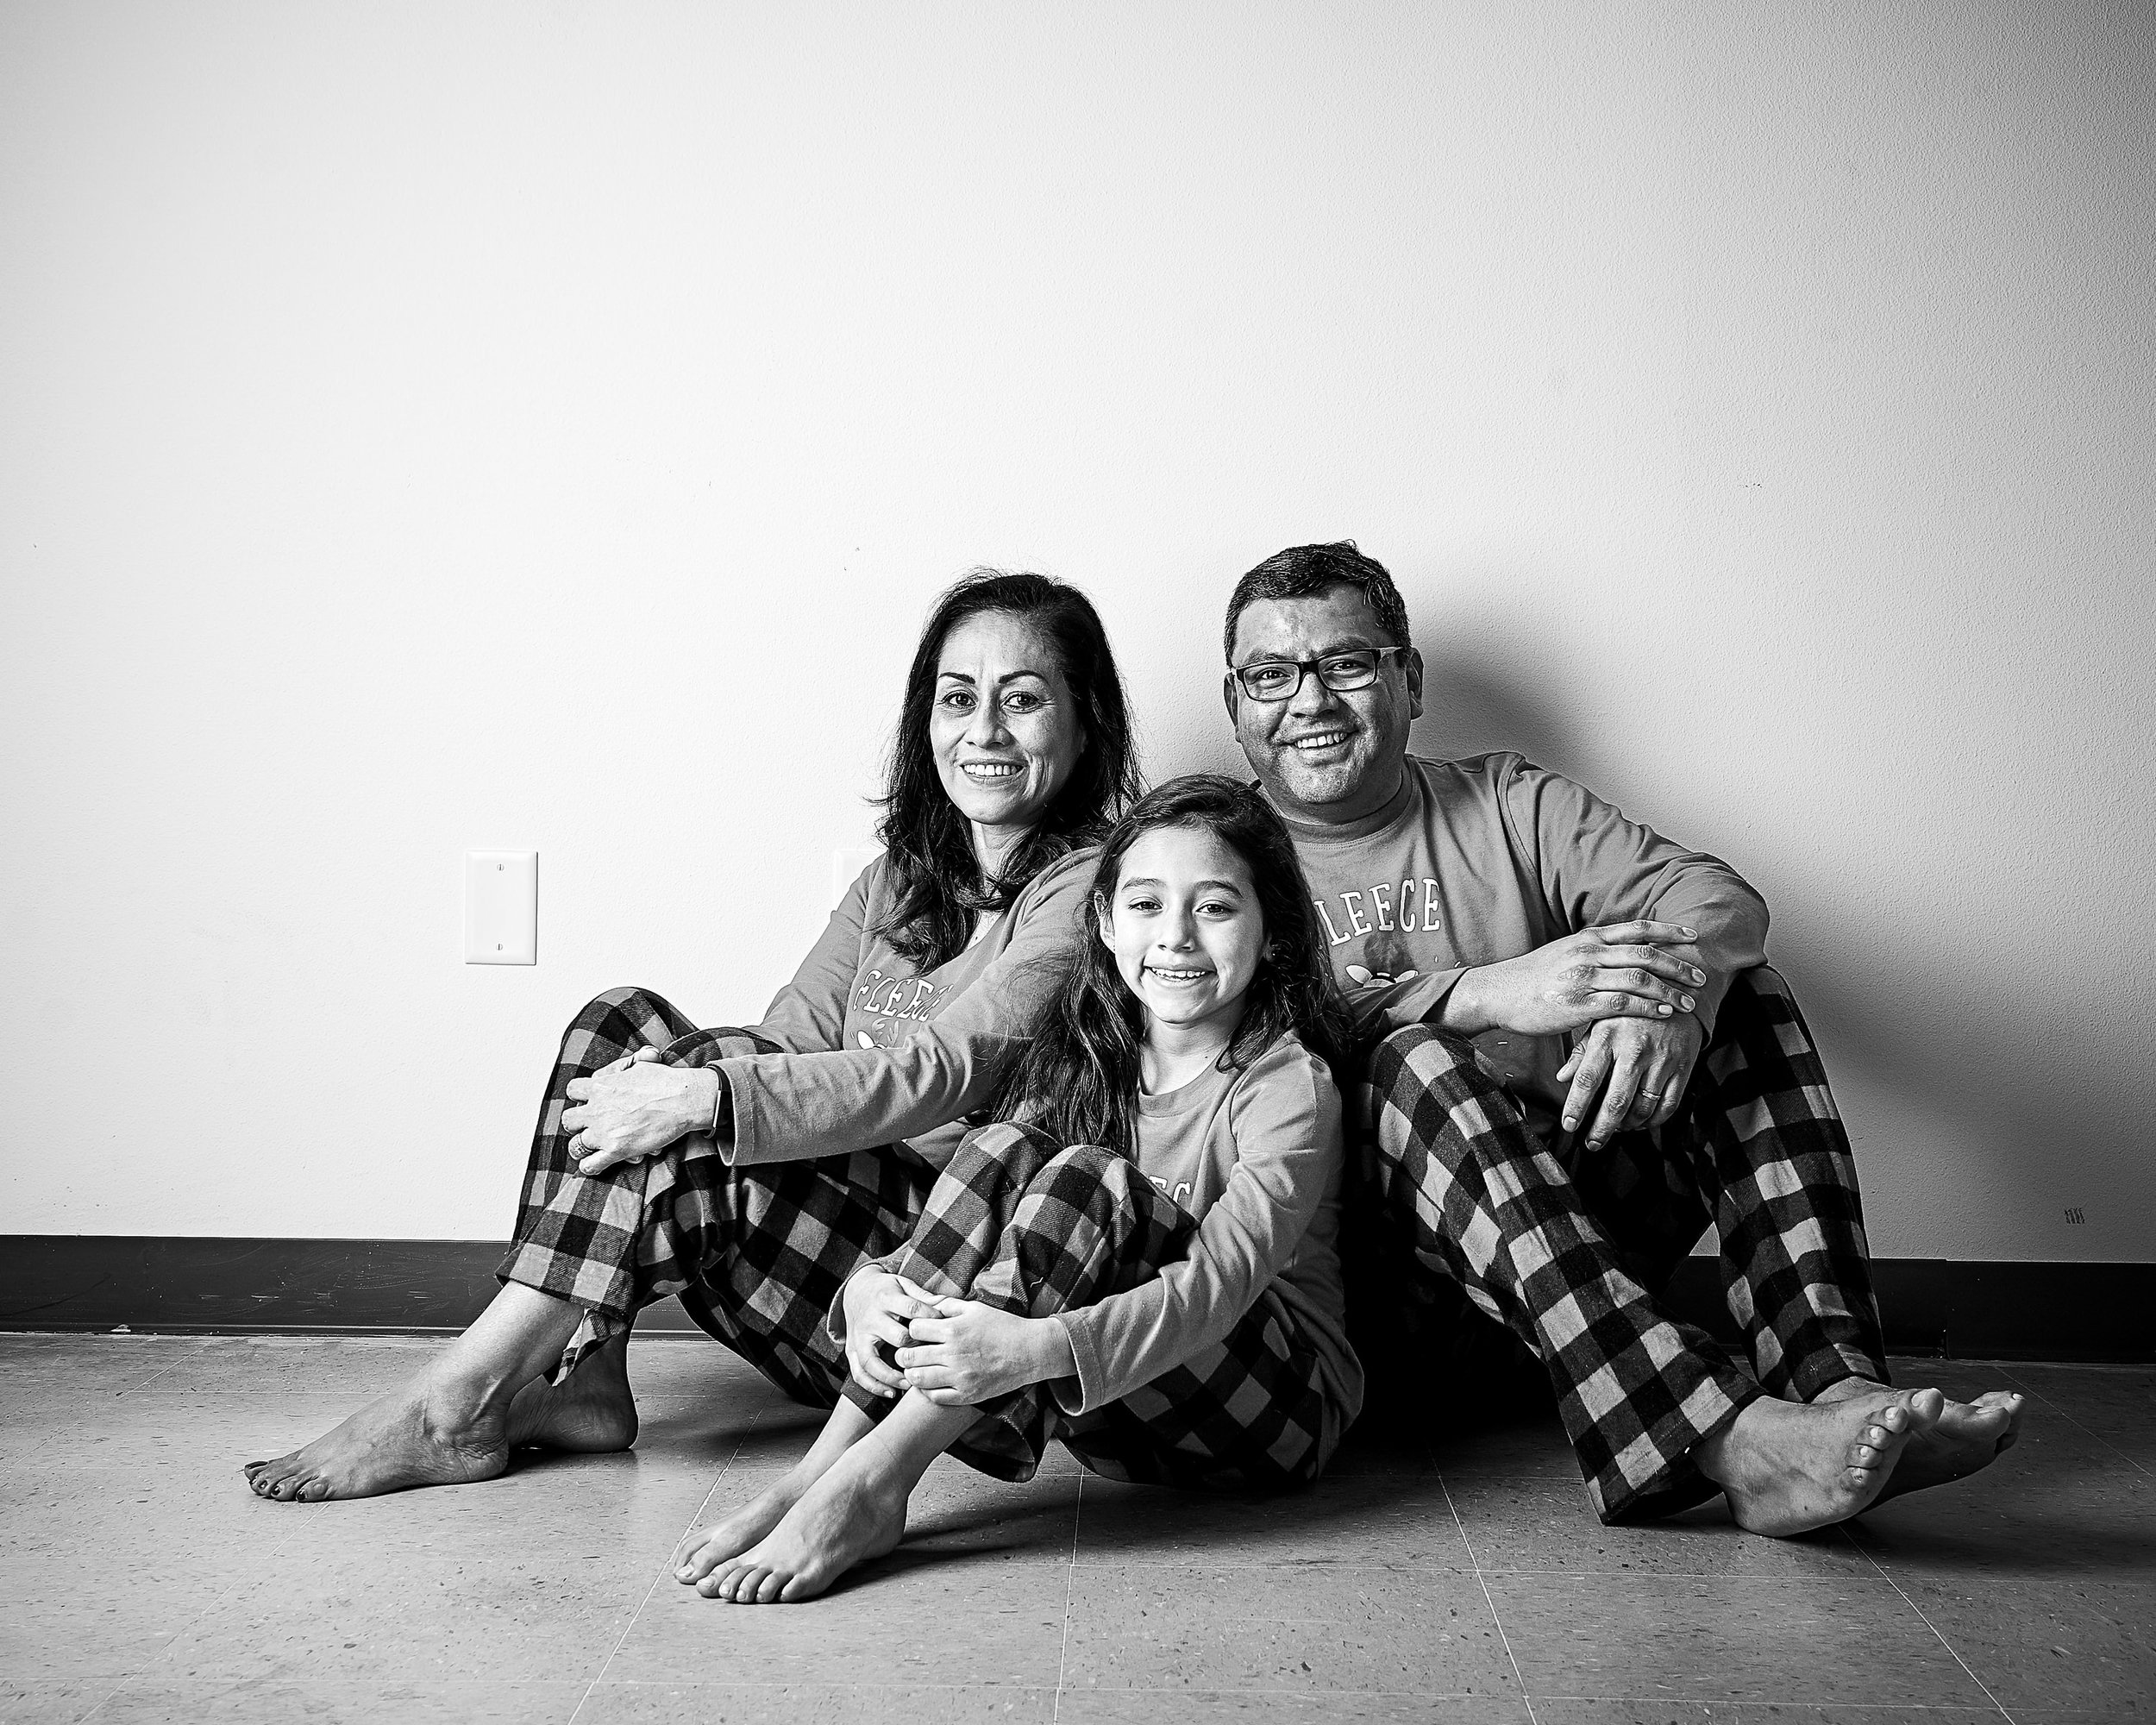 2018-12-16-Garcia Family7712-bw-proofs-retouched web.jpg